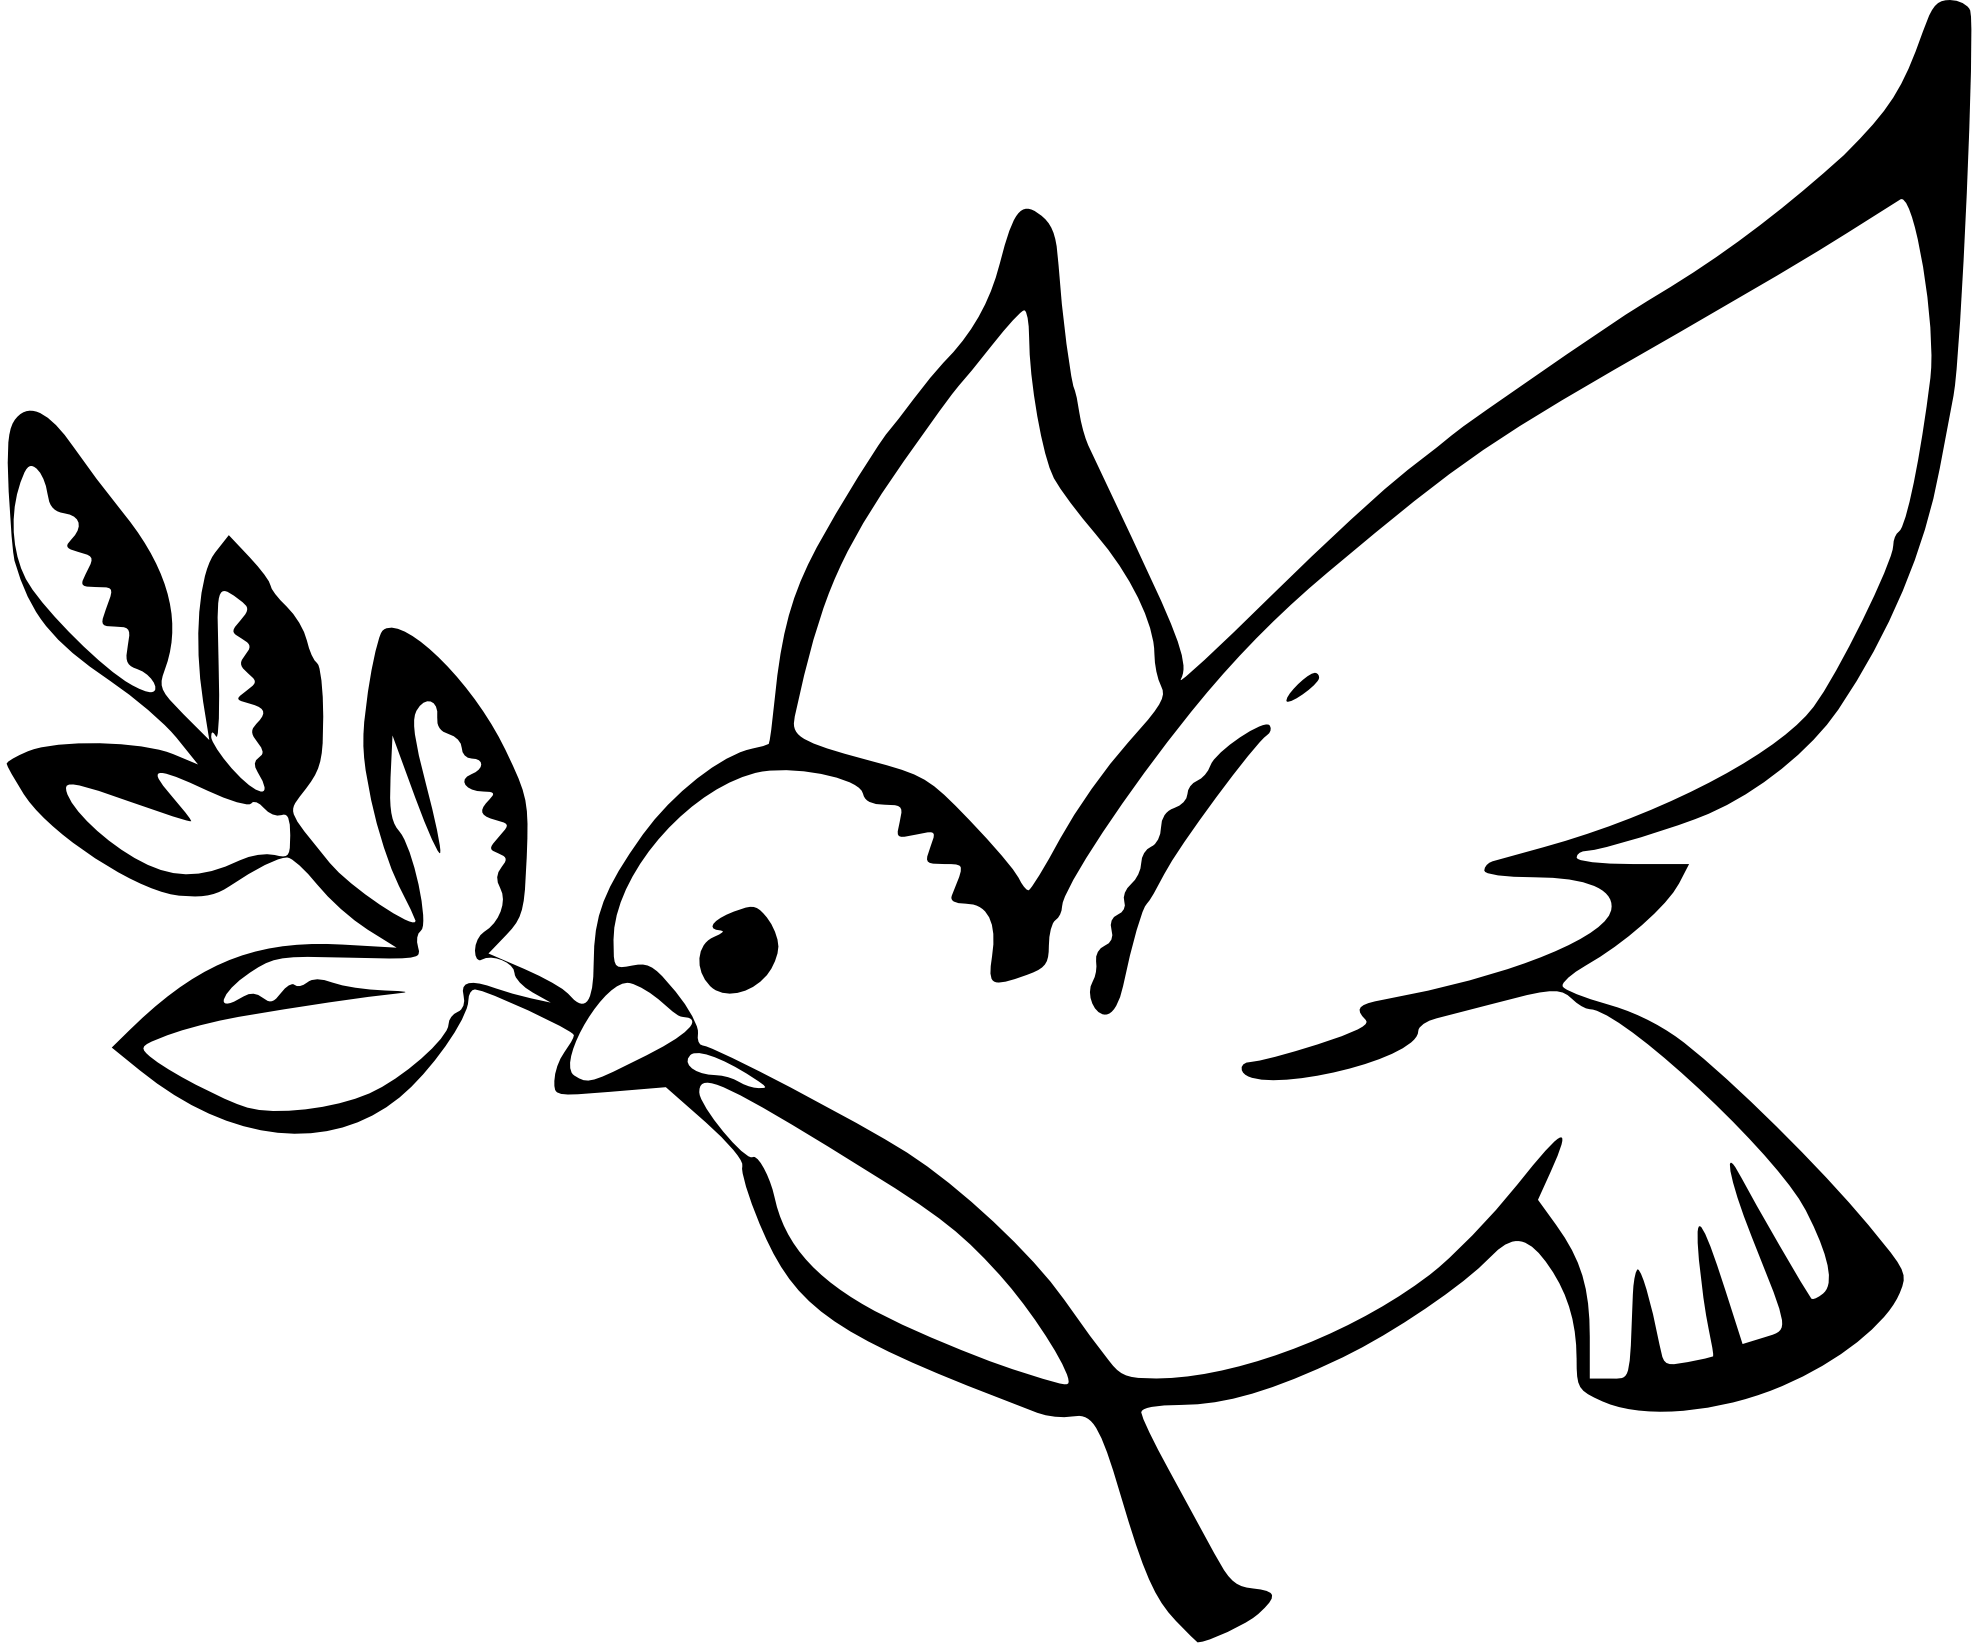 Doves clipart transparent background. Peace dove black and